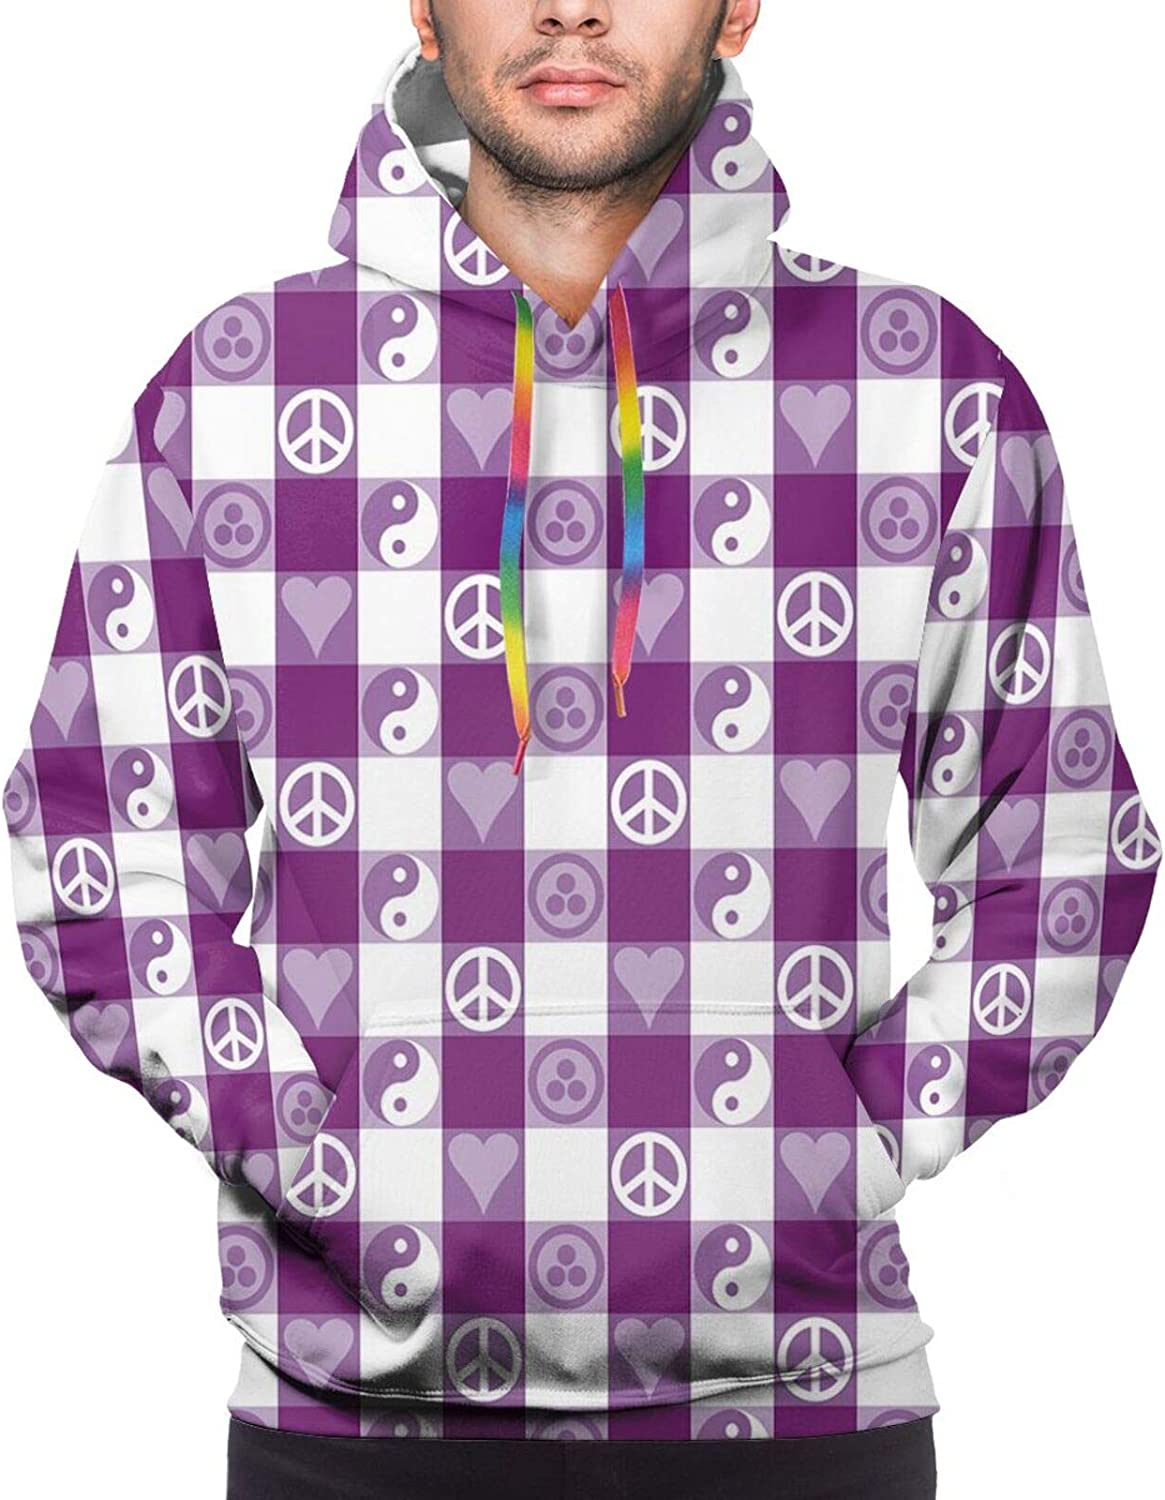 Men's Hoodies Sweatshirts,Pixel Art Style Heart Connected to A Controller with Simplistic Design